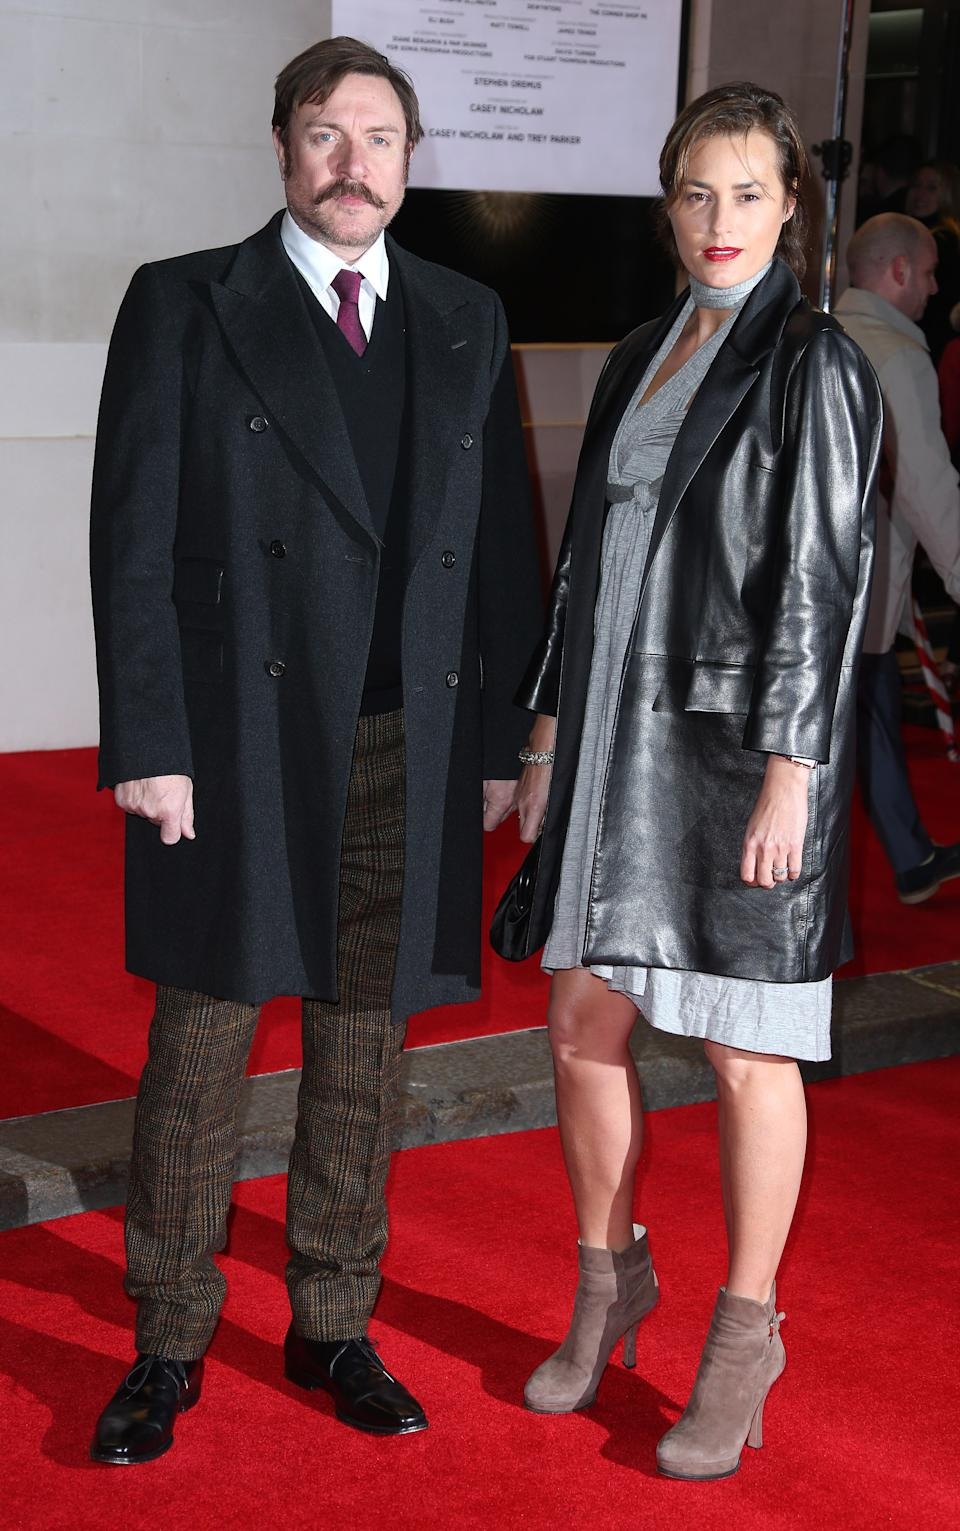 Simon Le Bon and Yasmin Le Bon pose for photographers on the red carpet for the opening night of 'The Book of Mormon' at The Prince of Wales theatre in central London, Thursday, March 21, 2013. (Photo by Joel Ryan/Invision/AP)